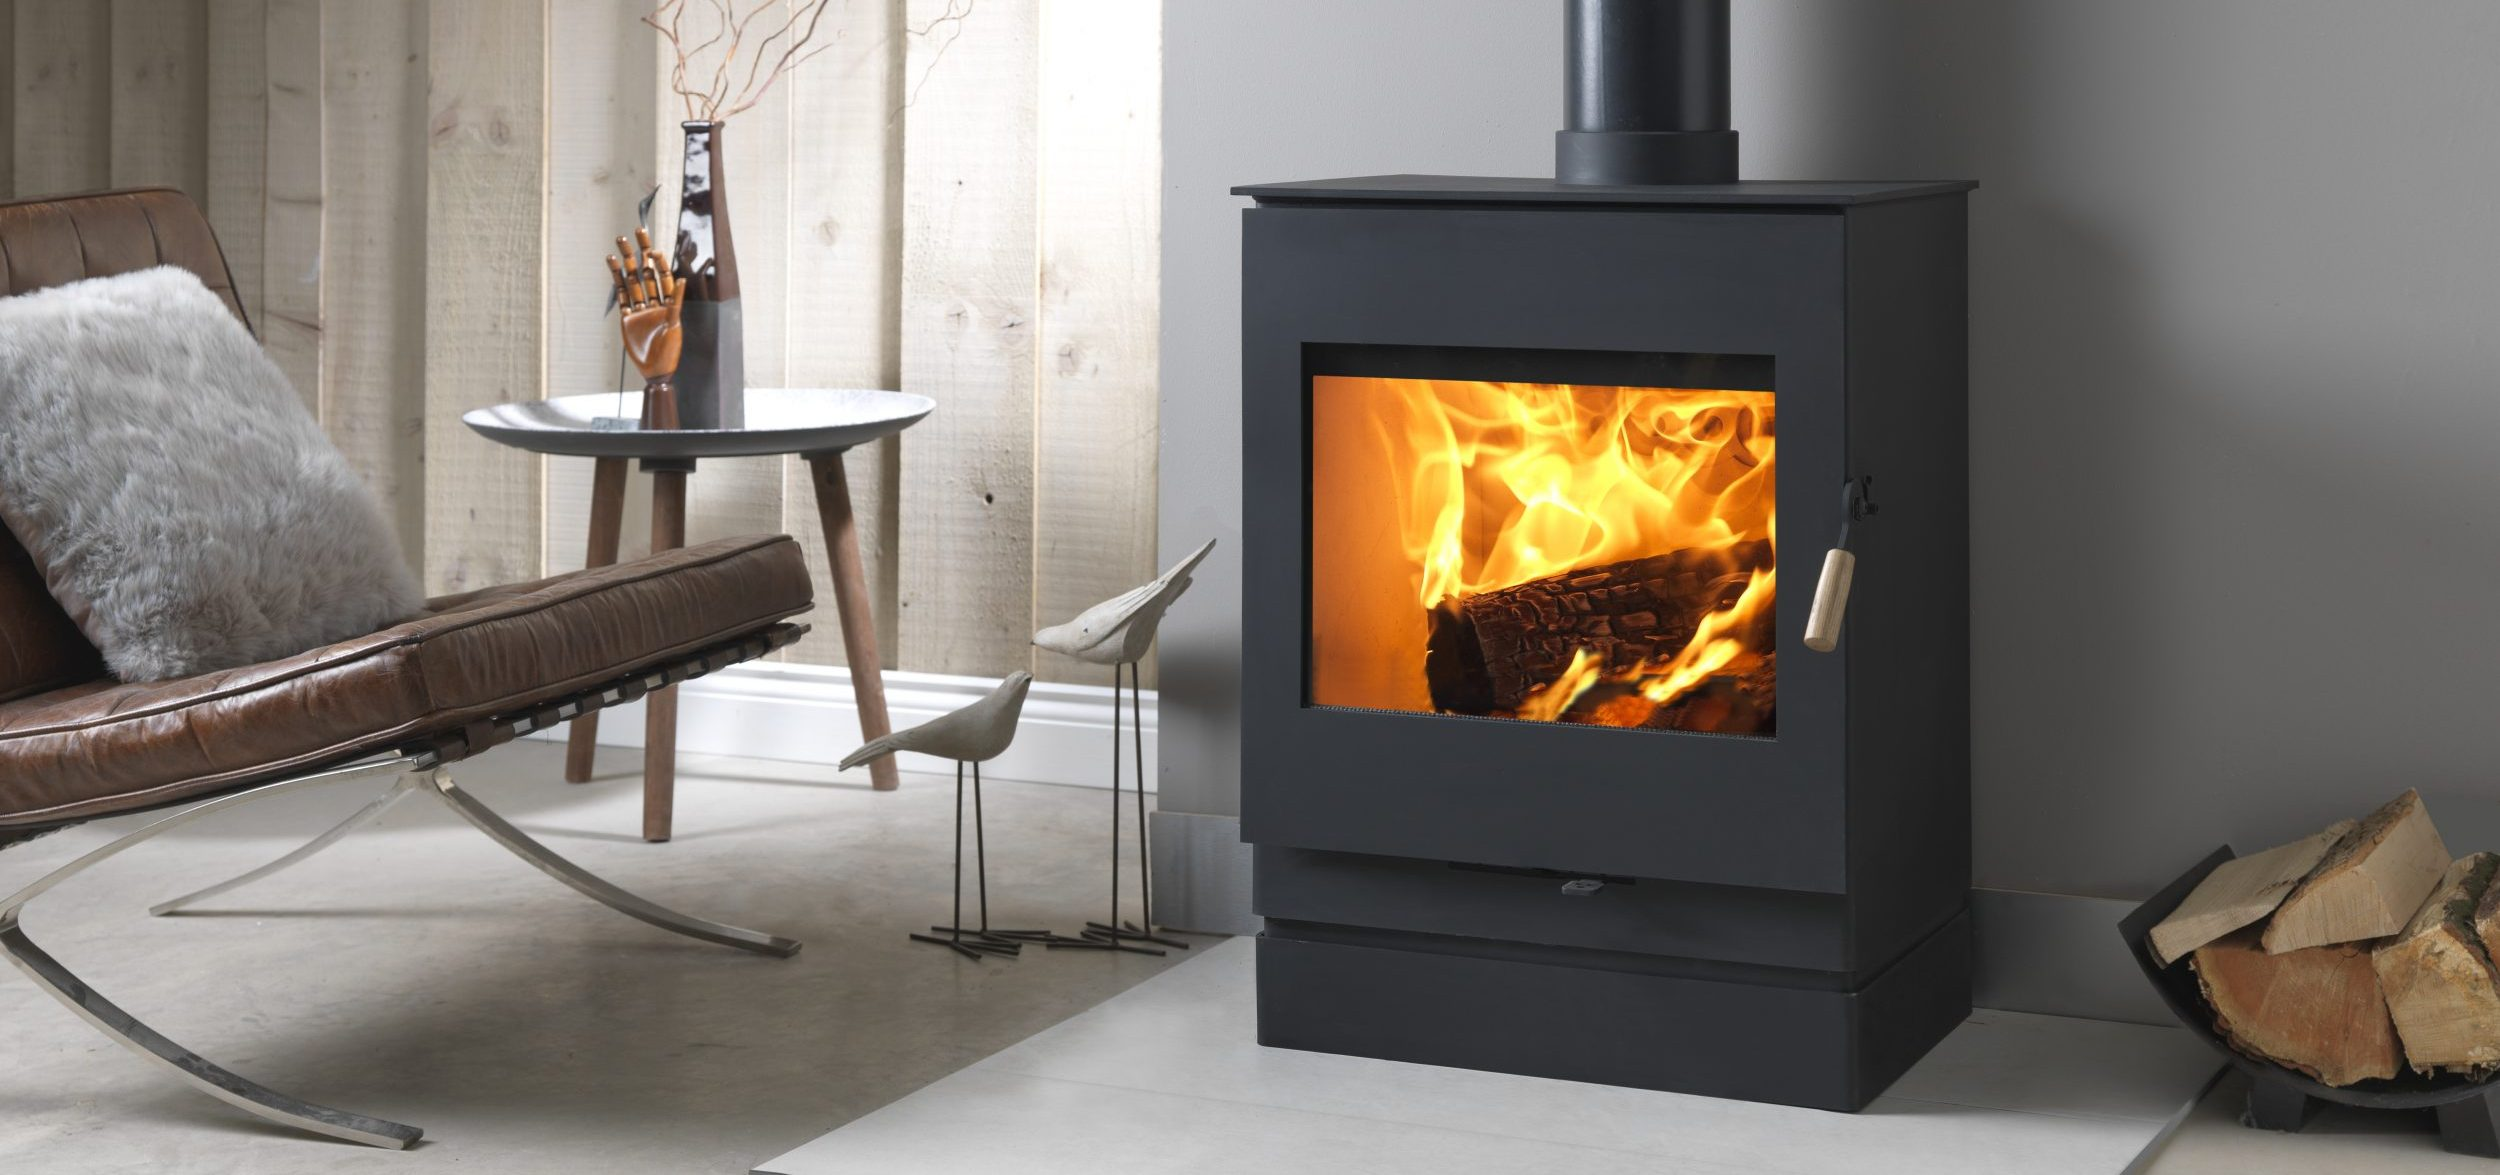 Firecube 9308 View our New Firecube range